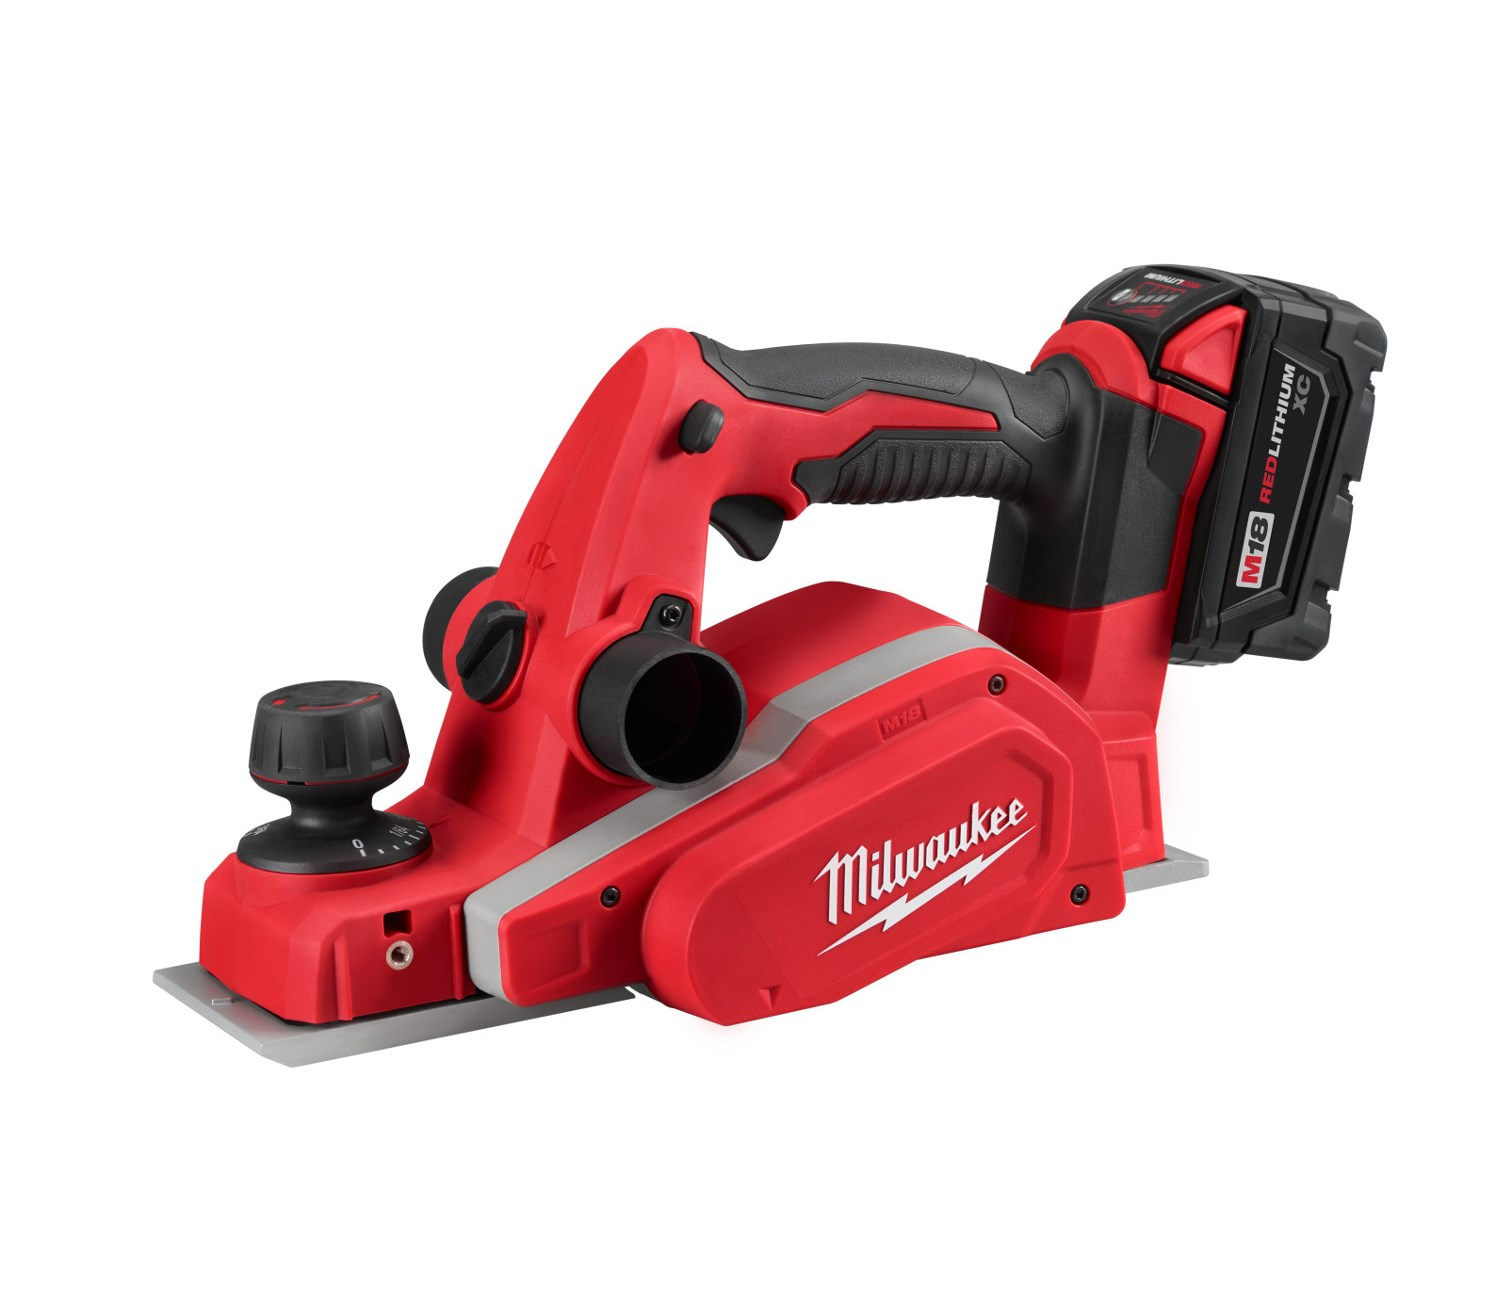 milwaukee cordless planer tools of the trade cordless tools shaping equipment surface preparation milwaukee electric tool corp wisconsin - Milwaukee Cordless Framing Nailer